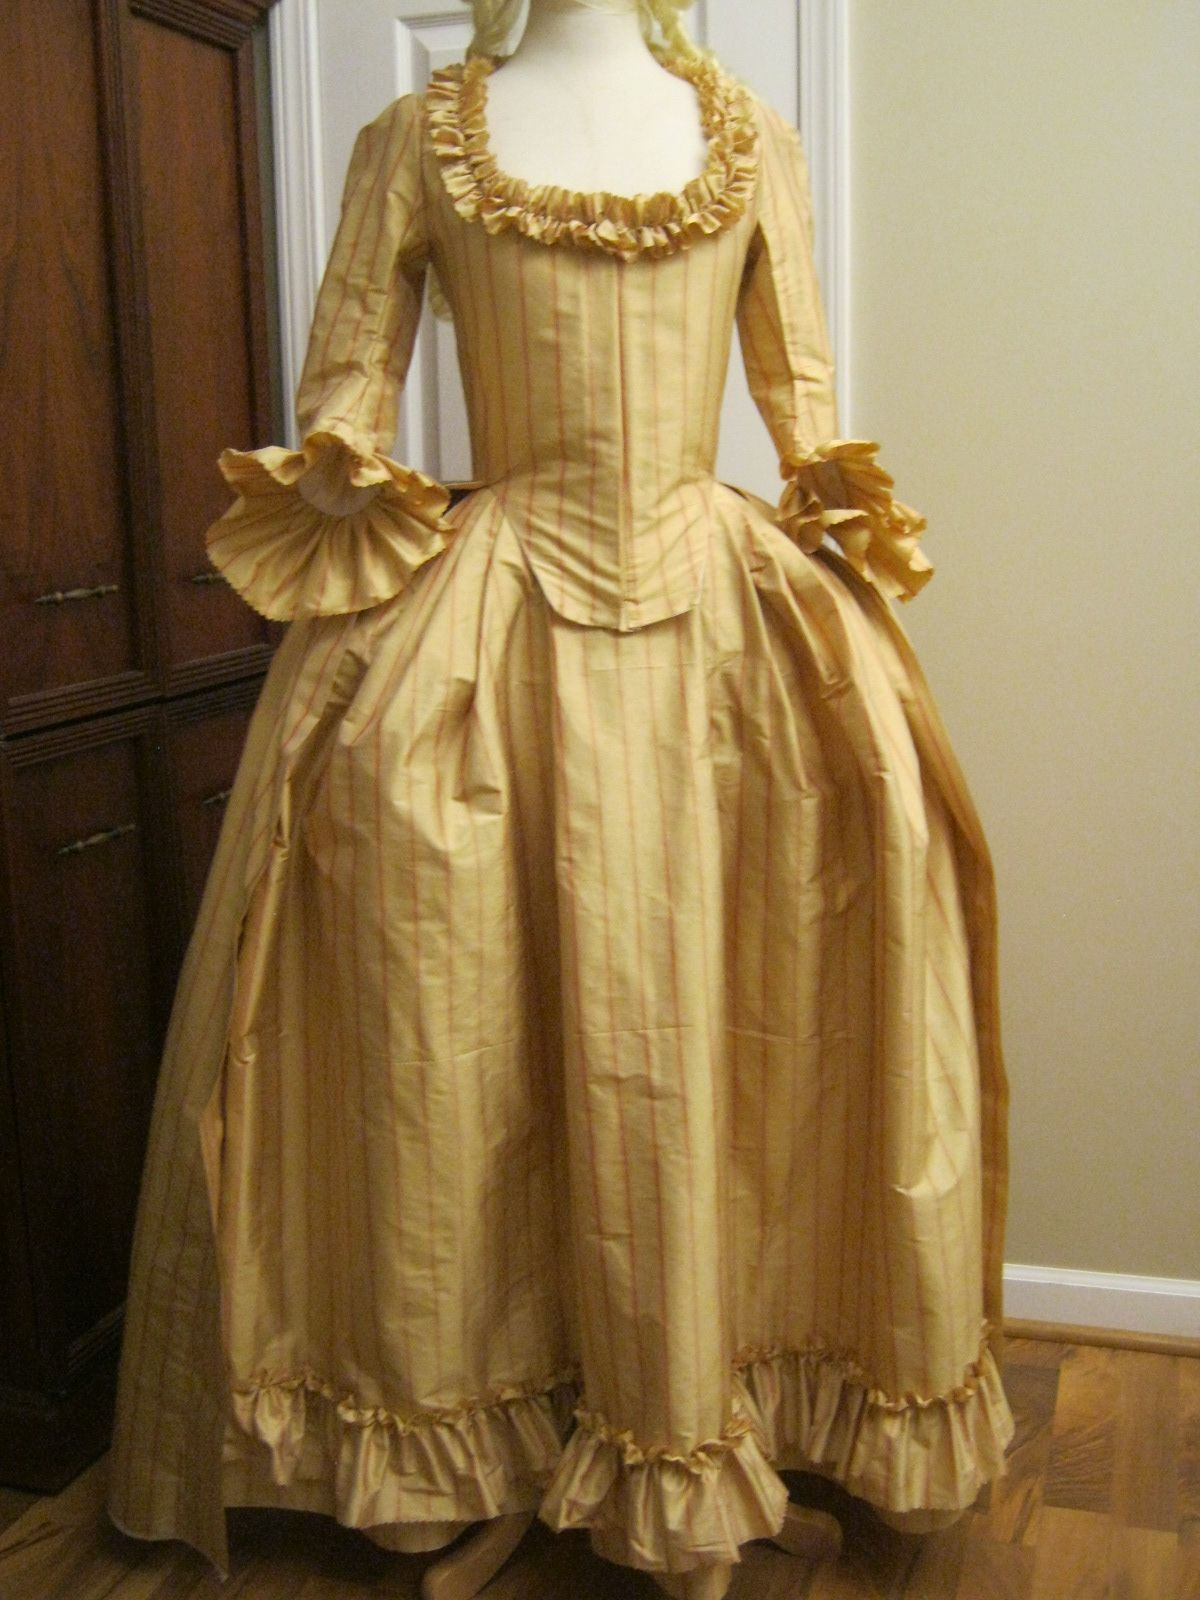 Silk Dupioni Colonial Gown with pinked edges for sale on Etsy by ...